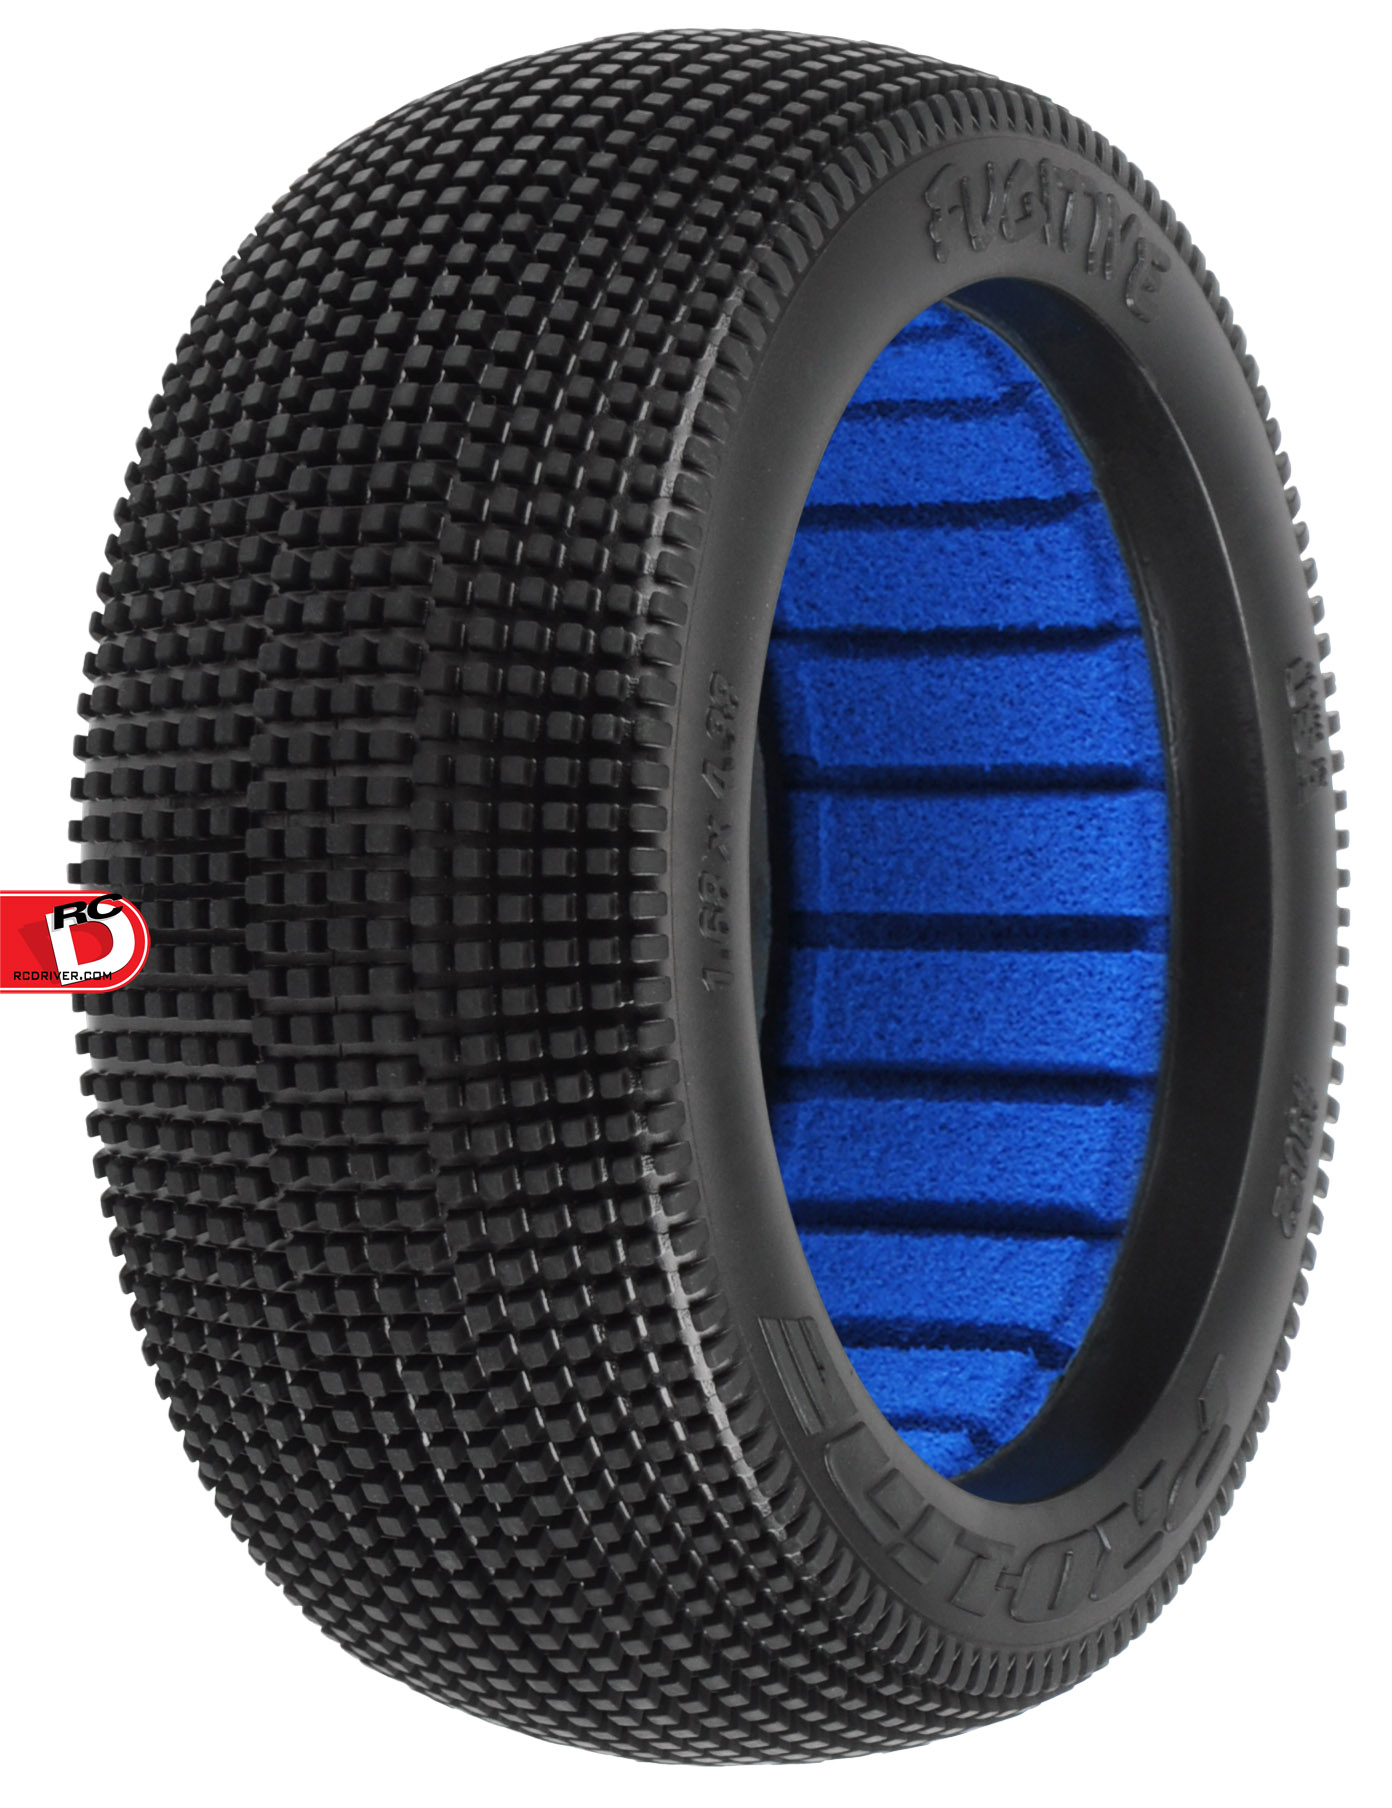 Pro-Line Fugitive X1 (Firm) Off-Road 1/8 Buggy Tires